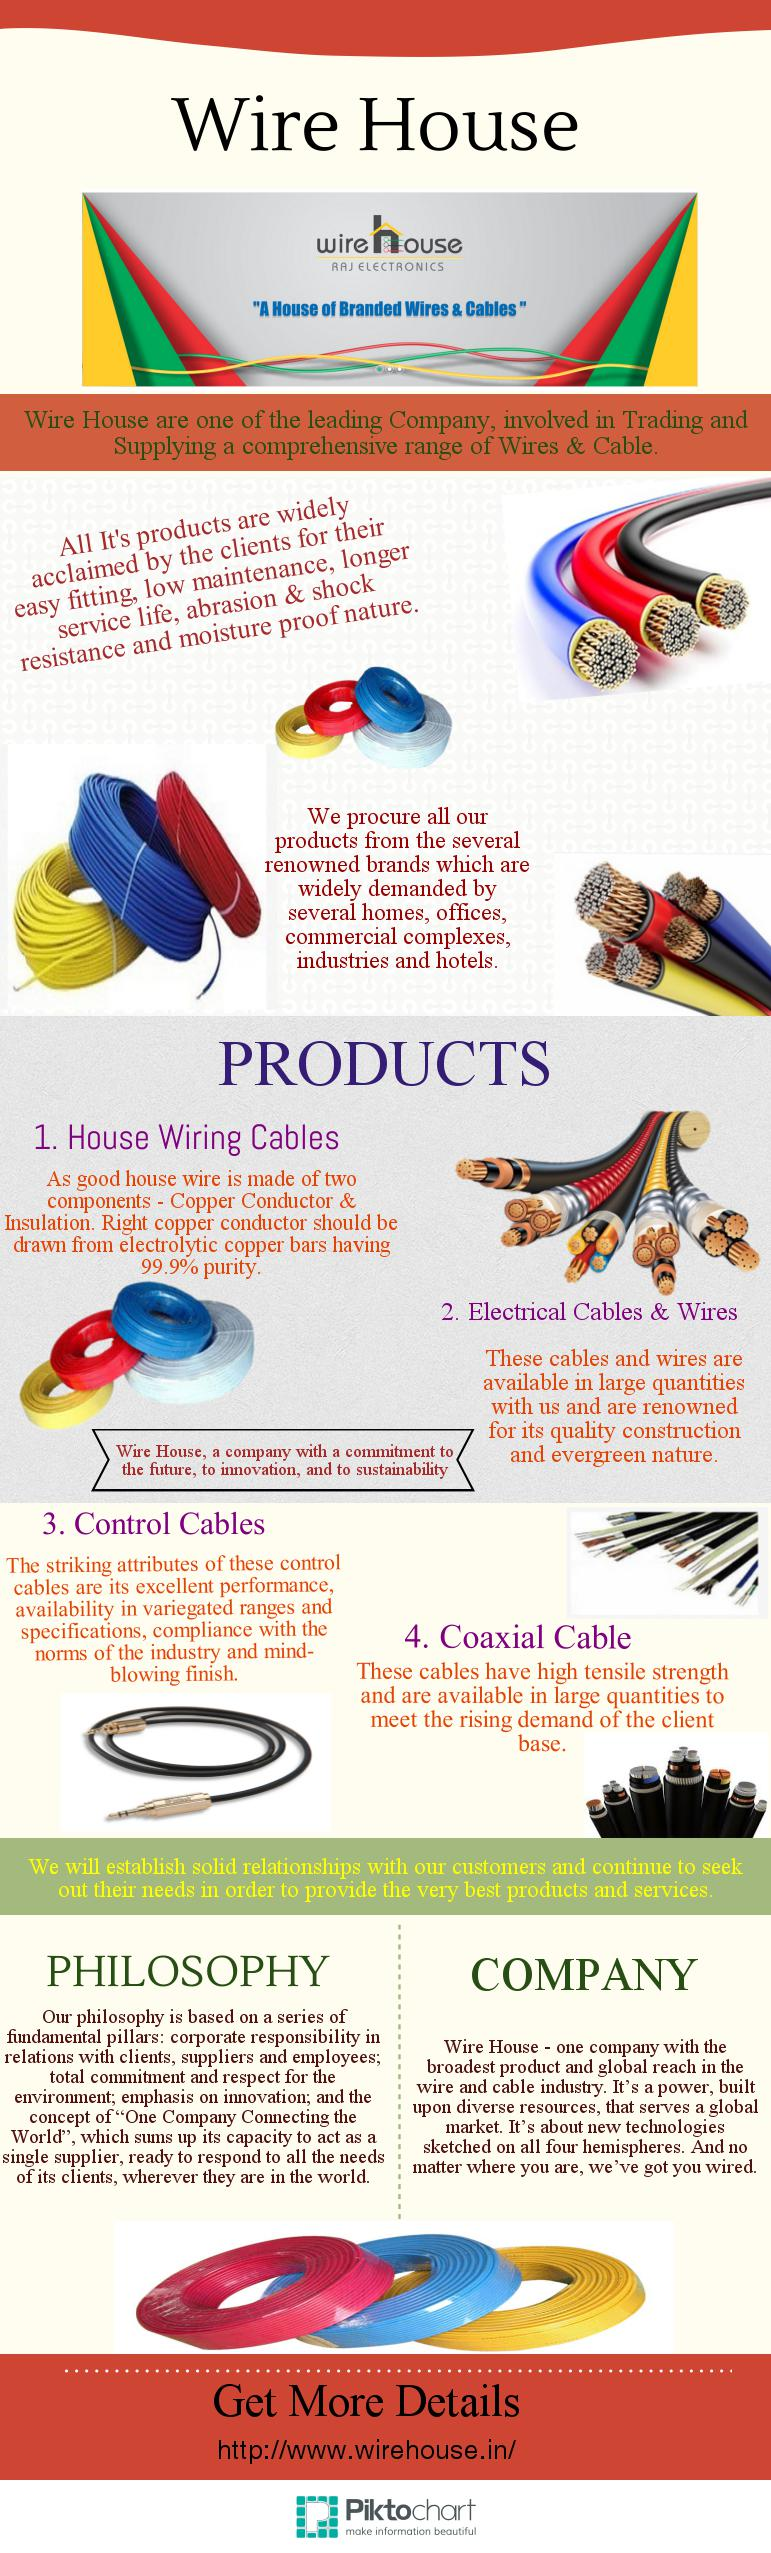 wirehouse store deals in all types of electrical wires and cables domestic and [ 771 x 2553 Pixel ]